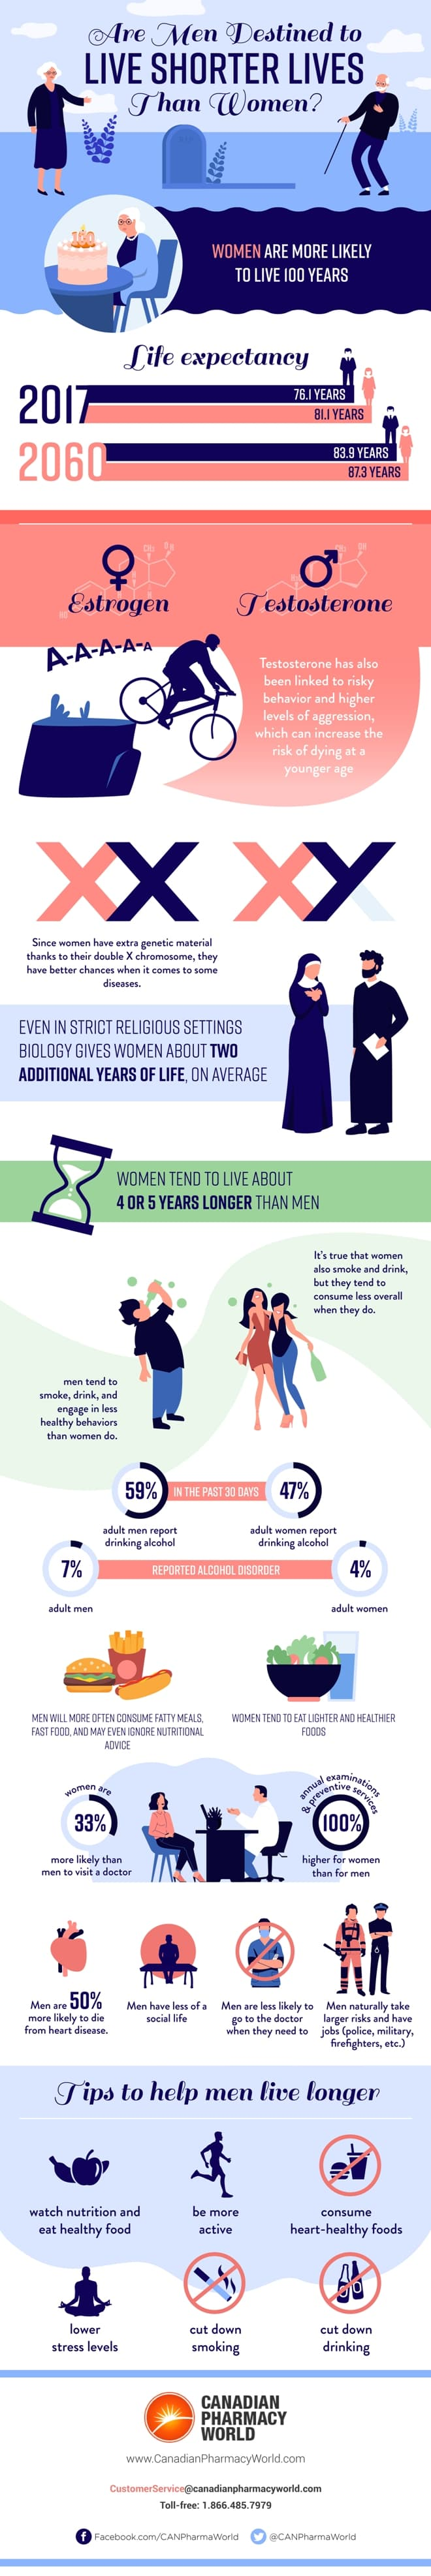 Are Men Destined to Live Shorter Lives Than Women?